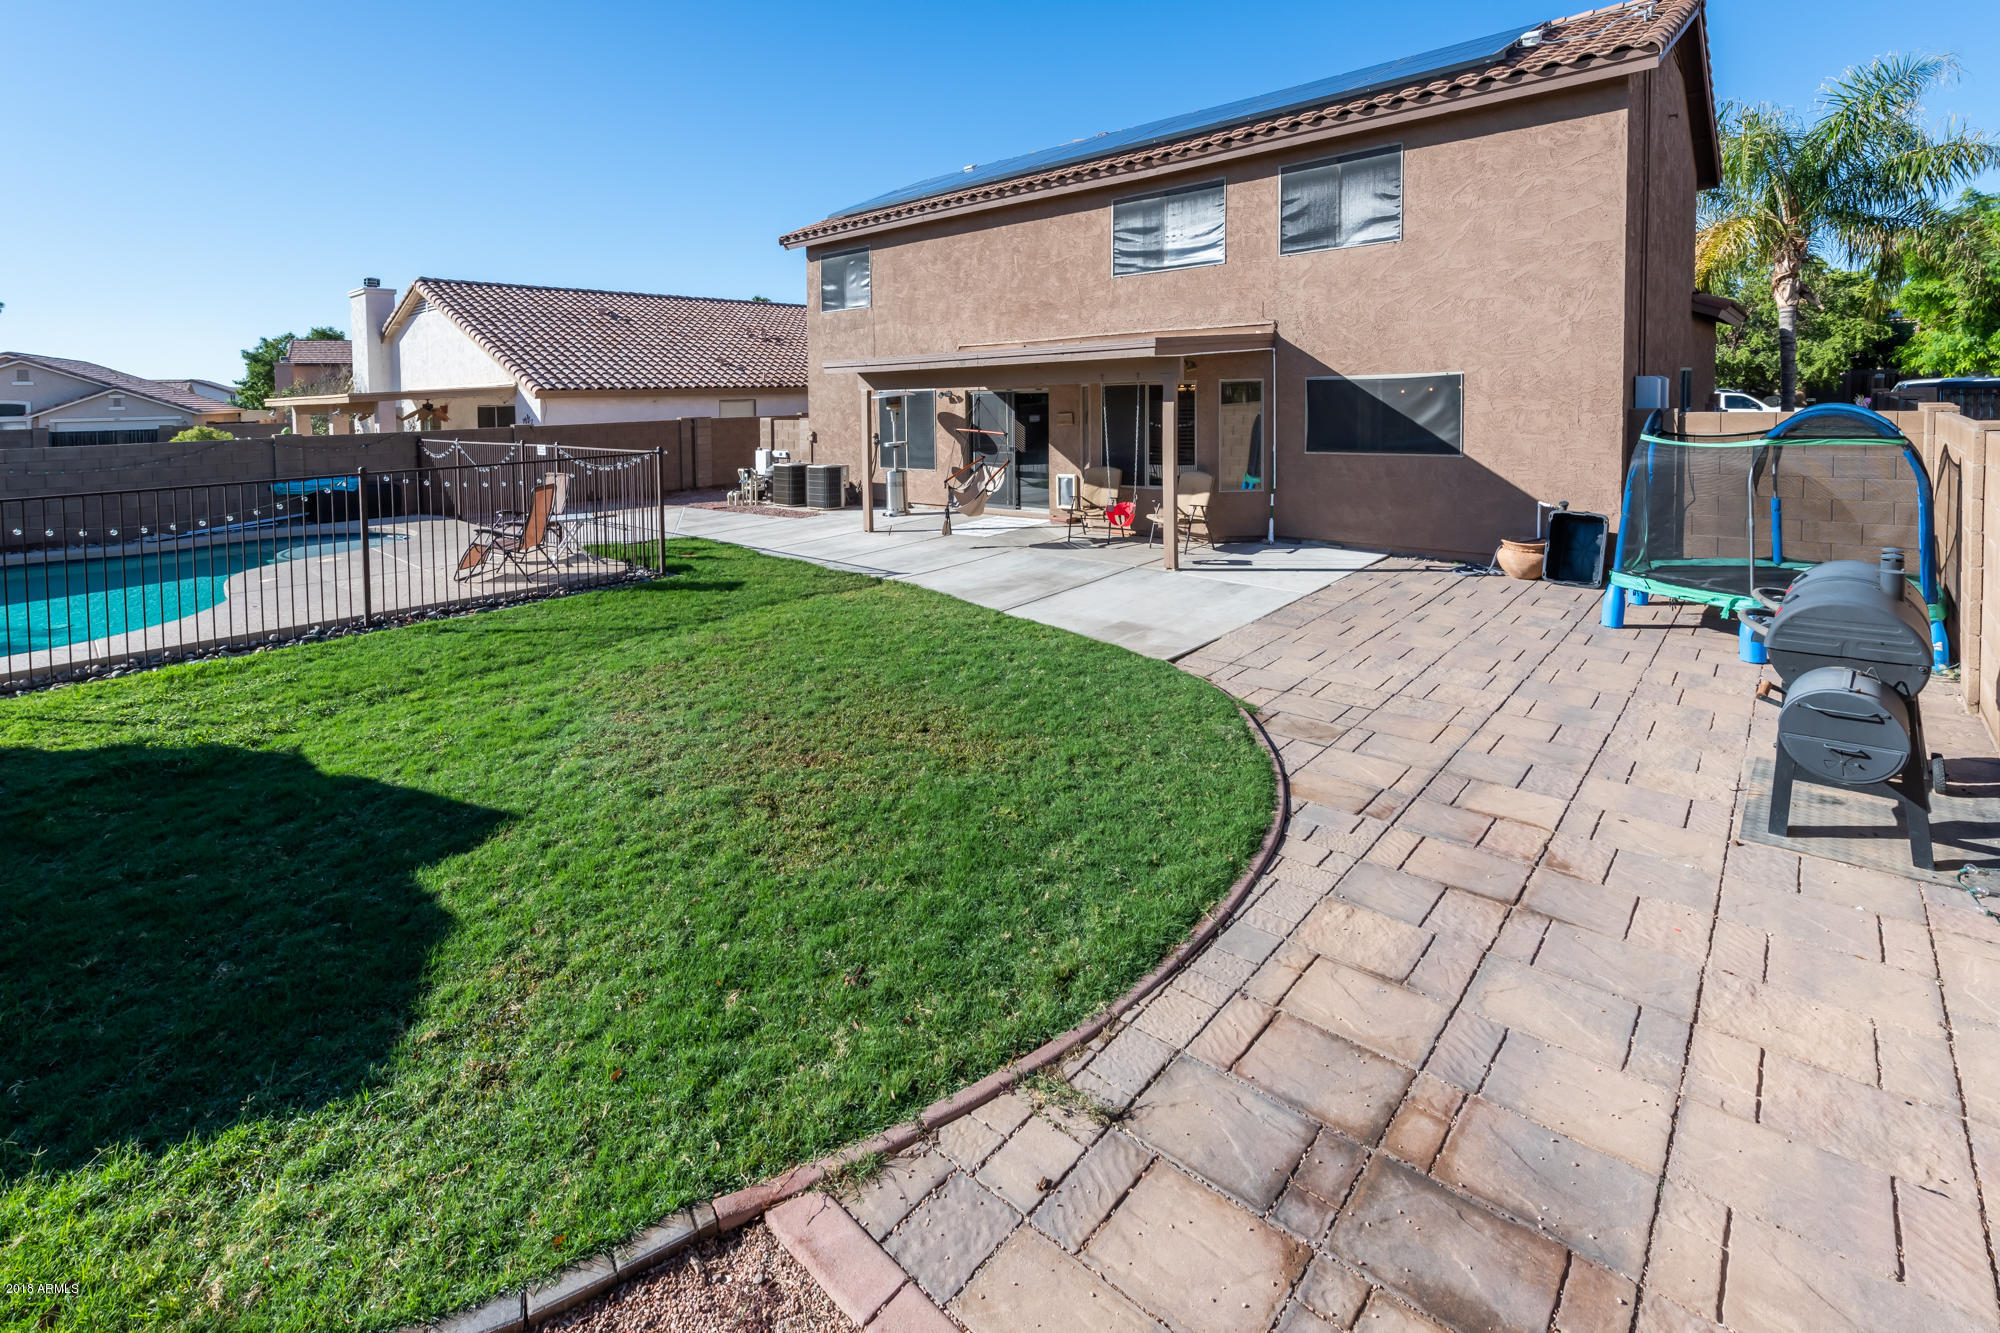 MLS 5834419 16171 N 158TH Drive, Surprise, AZ 85374 Surprise AZ Mountain Vista Ranch